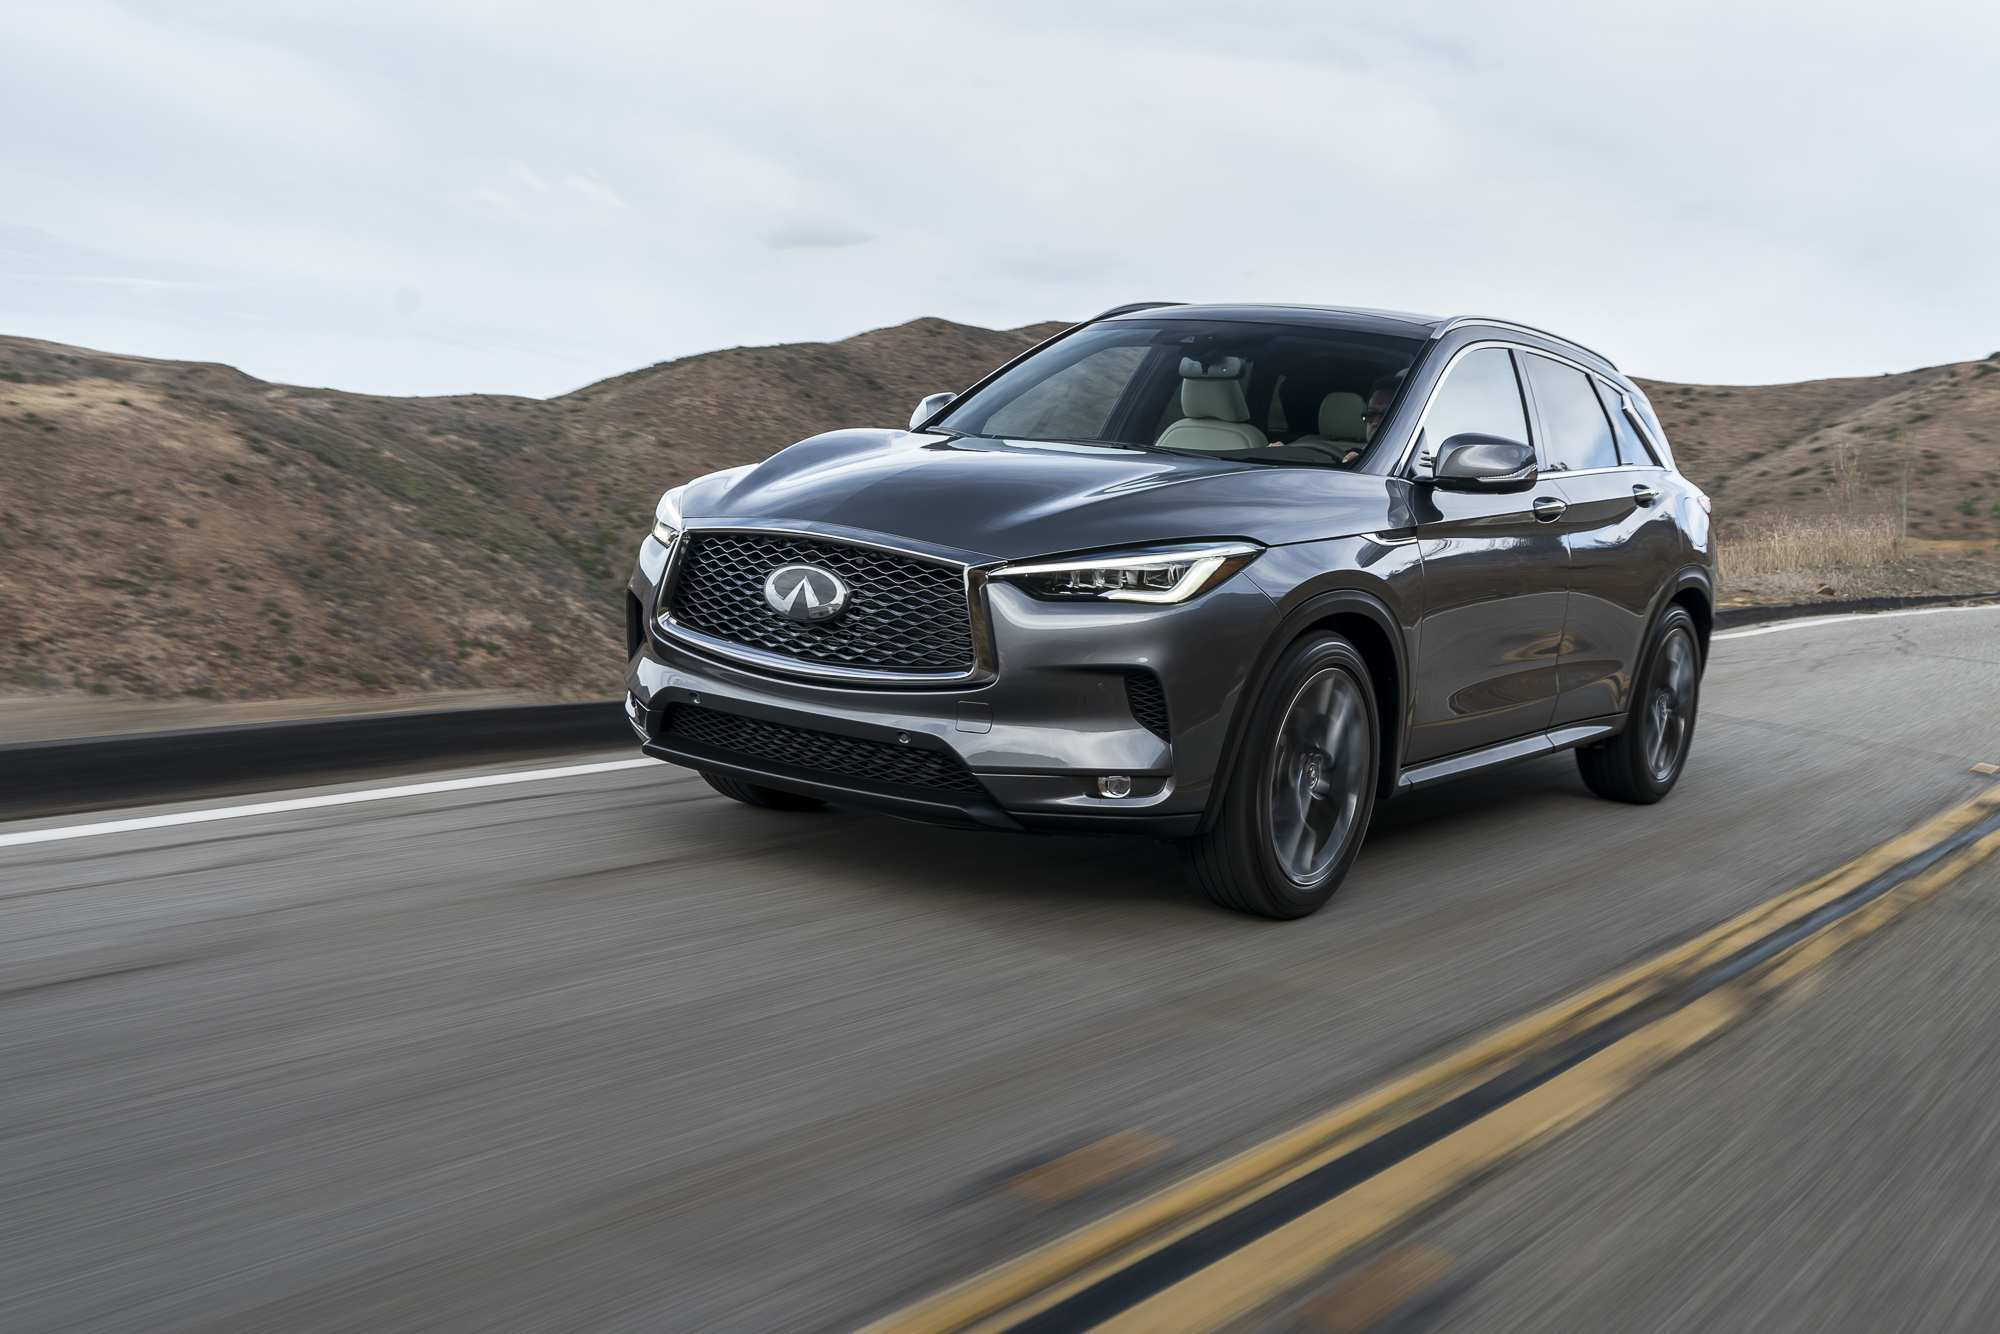 25 Great 2019 Infiniti Qx50 Dimensions Price and Review for 2019 Infiniti Qx50 Dimensions